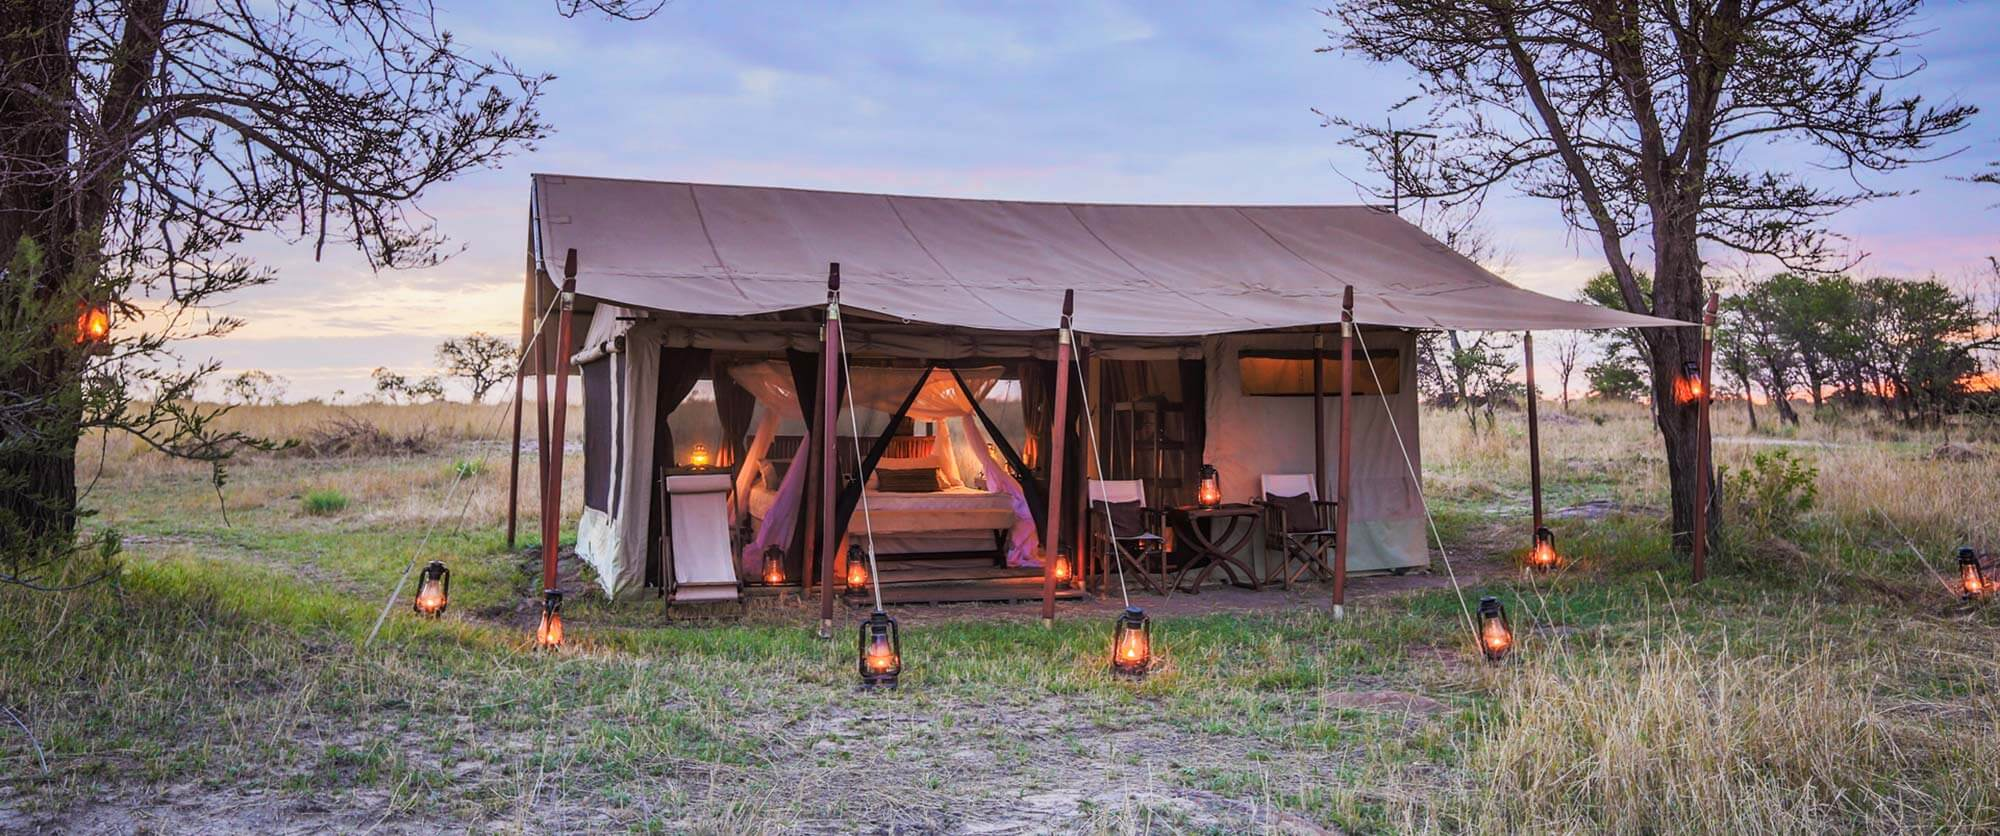 Tent at Legendary Serengeti Mobile Camp - Tanzania Safari Tours: Ultimate Northern Circuit Package